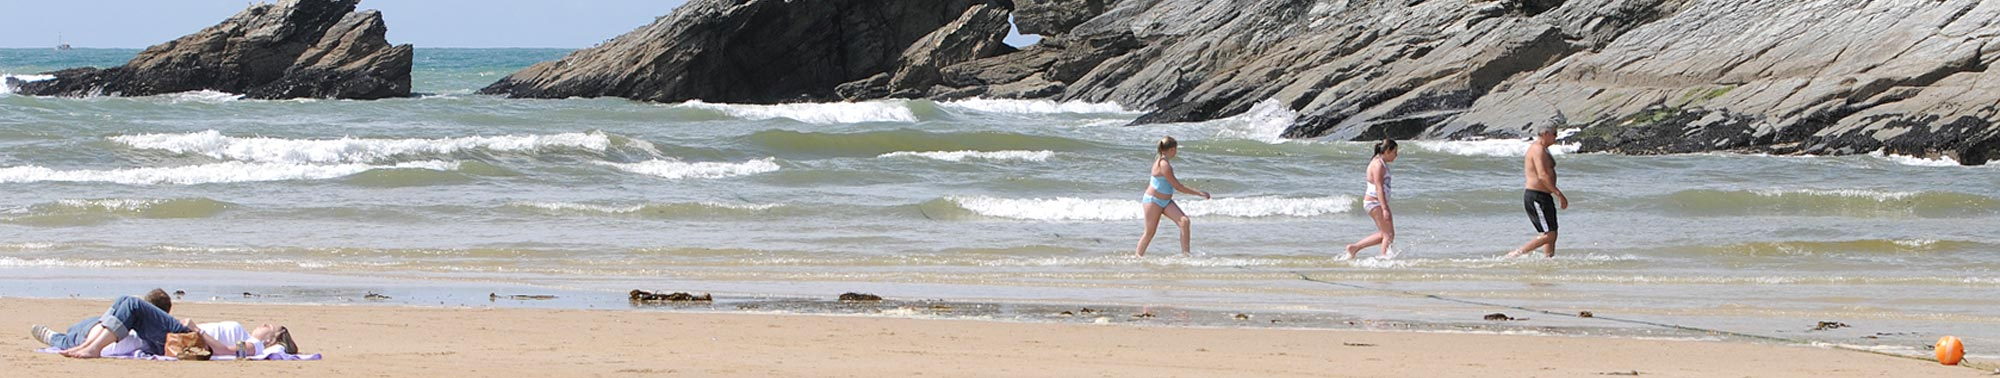 Porth beach, newquay , cornwall